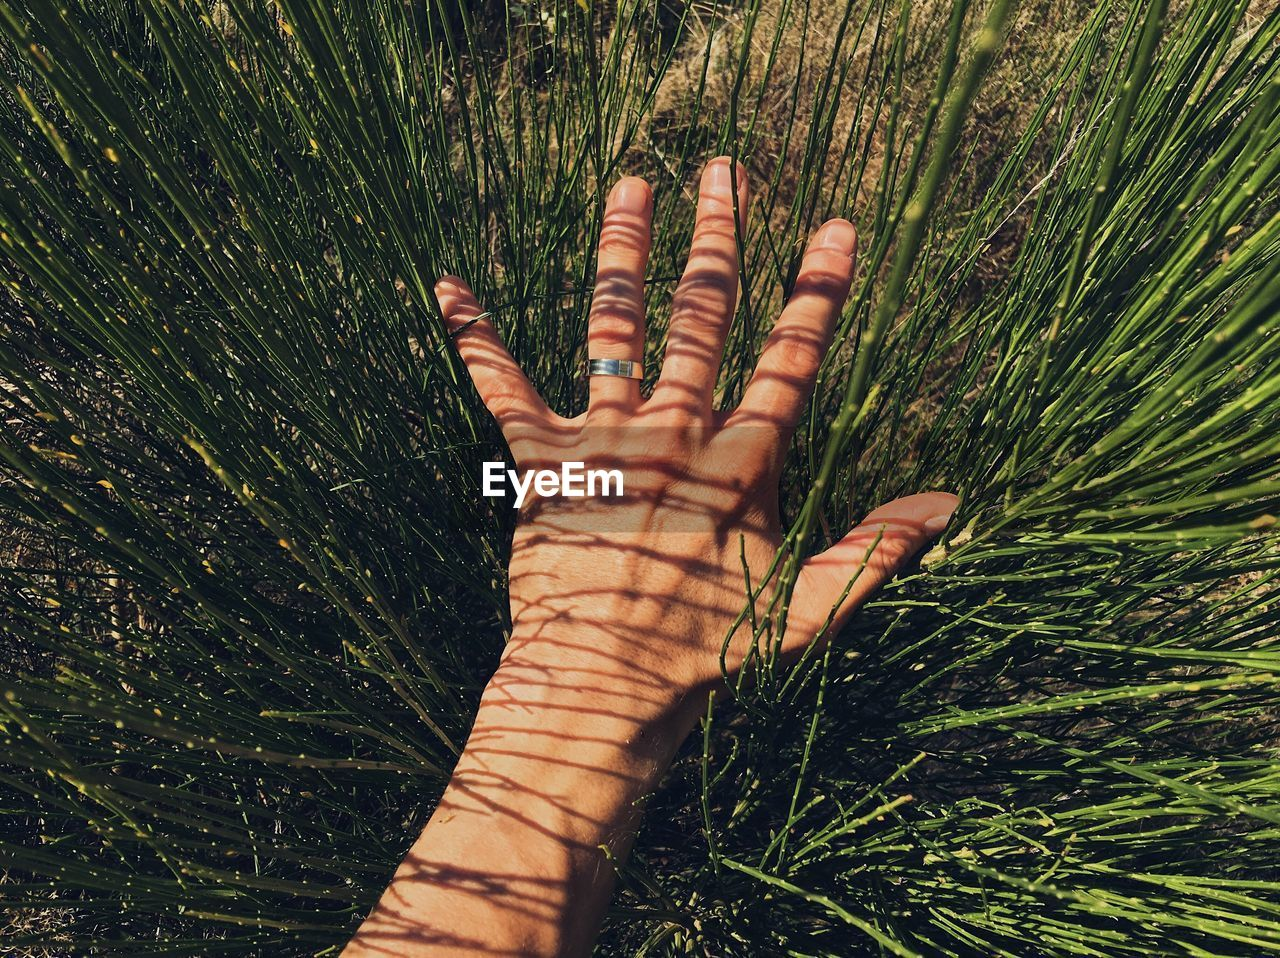 Cropped Hand Of Person Over Grassy Field